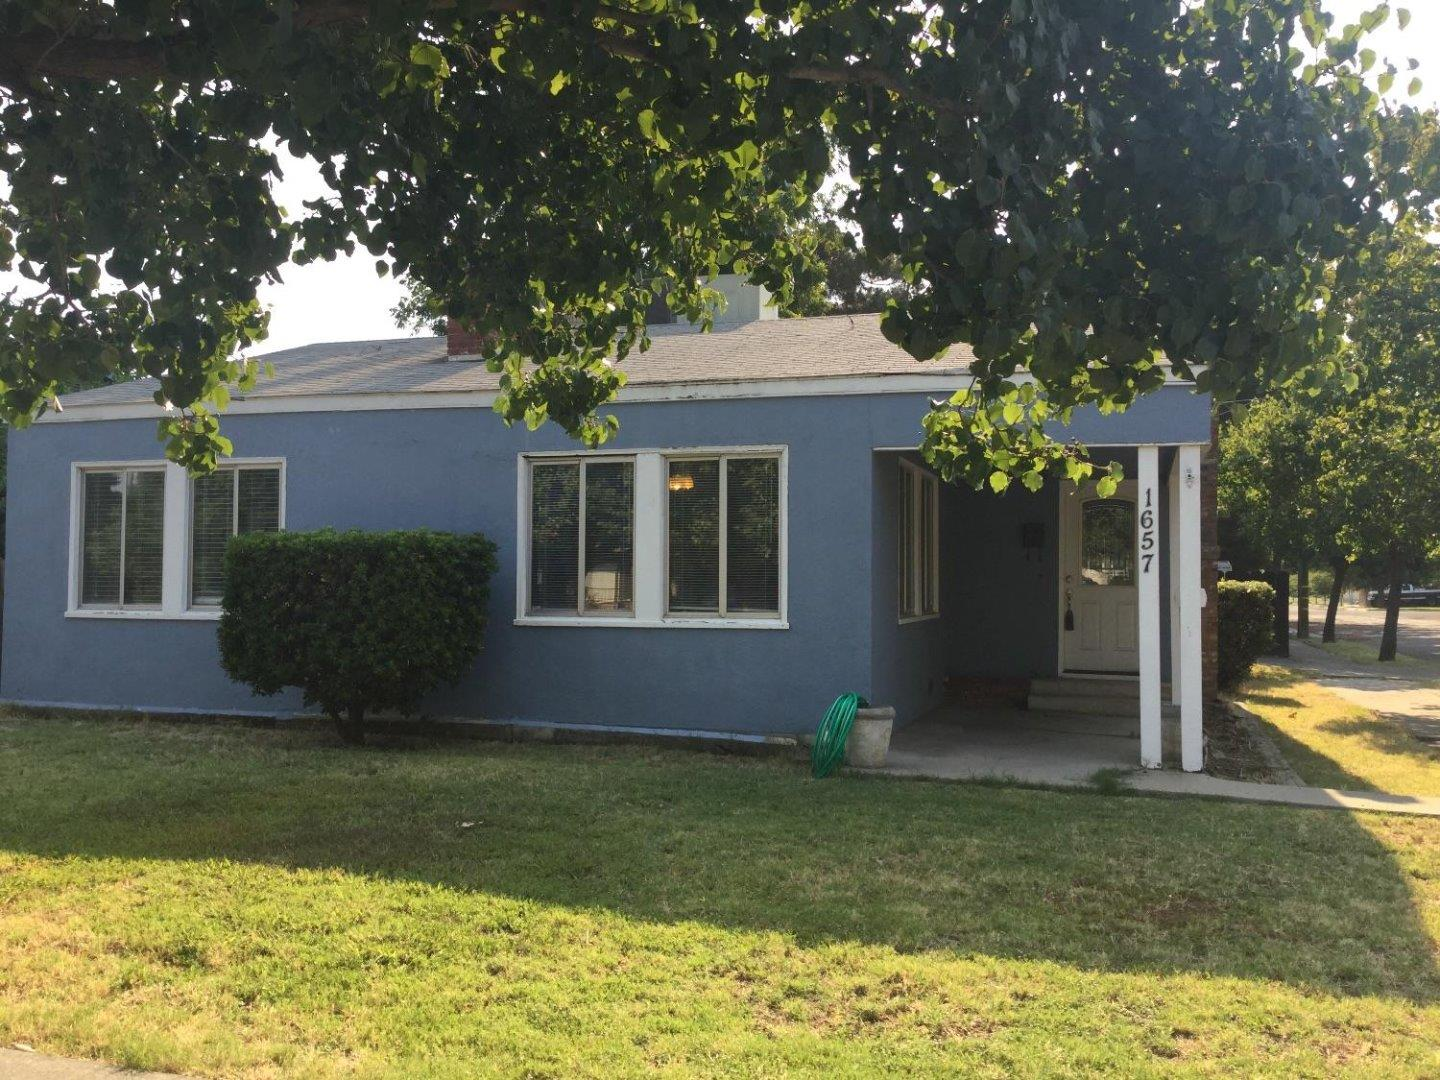 Single Family Home for Sale at 1657 Golden Gate Avenue Dos Palos, California 93620 United States